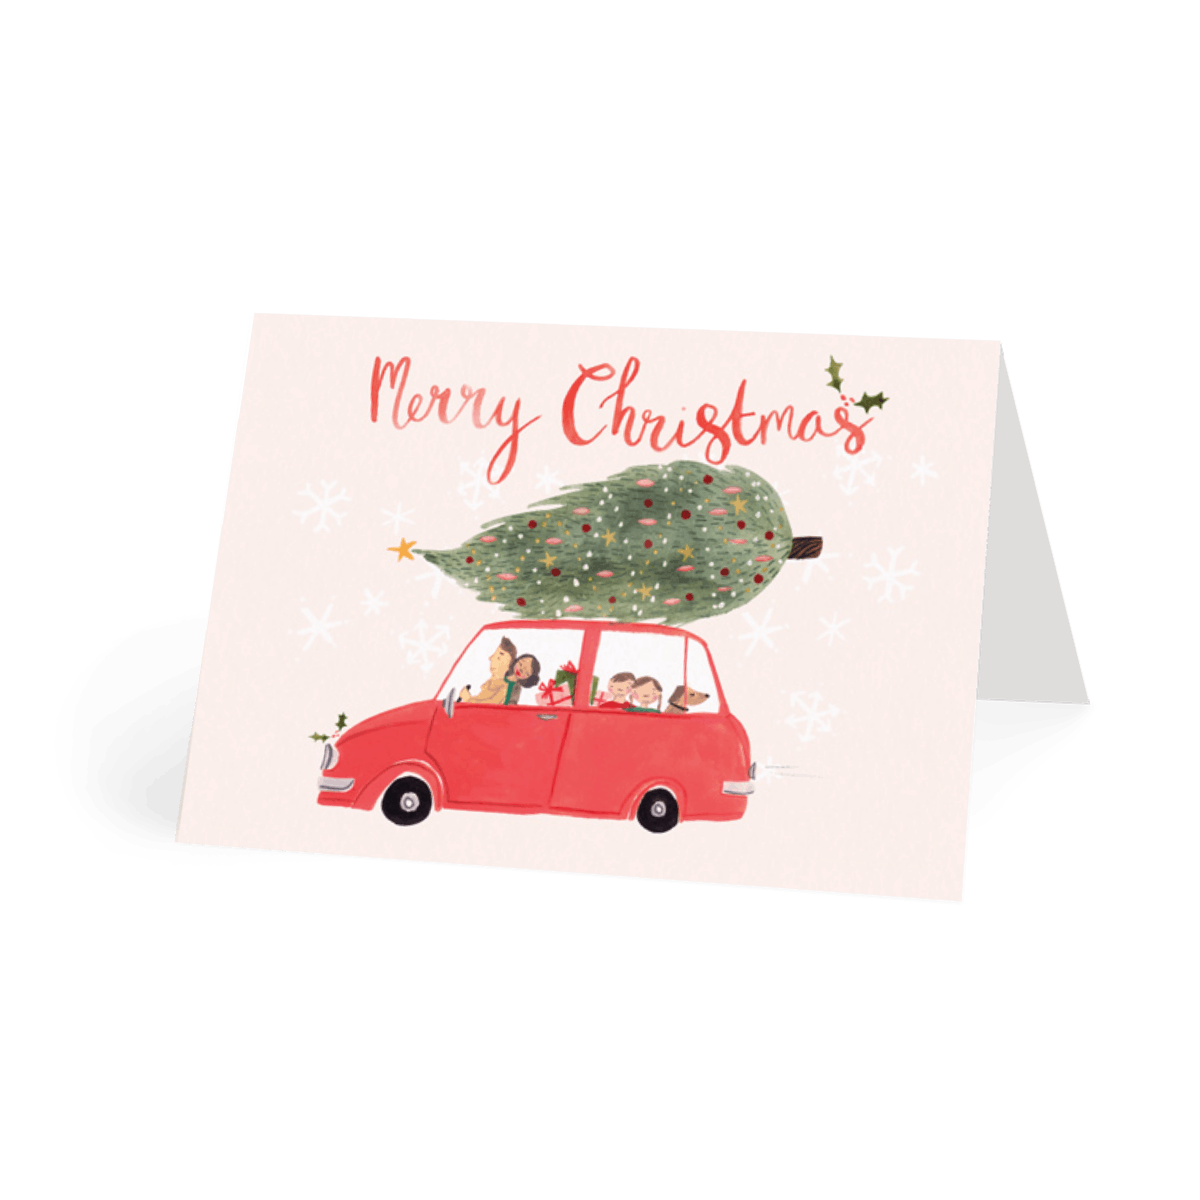 Https%3a%2f%2fwww.papier.com%2fproduct image%2f11681%2f14%2fdriving home for christmas 2963 front 1475600736.png?ixlib=rb 1.1